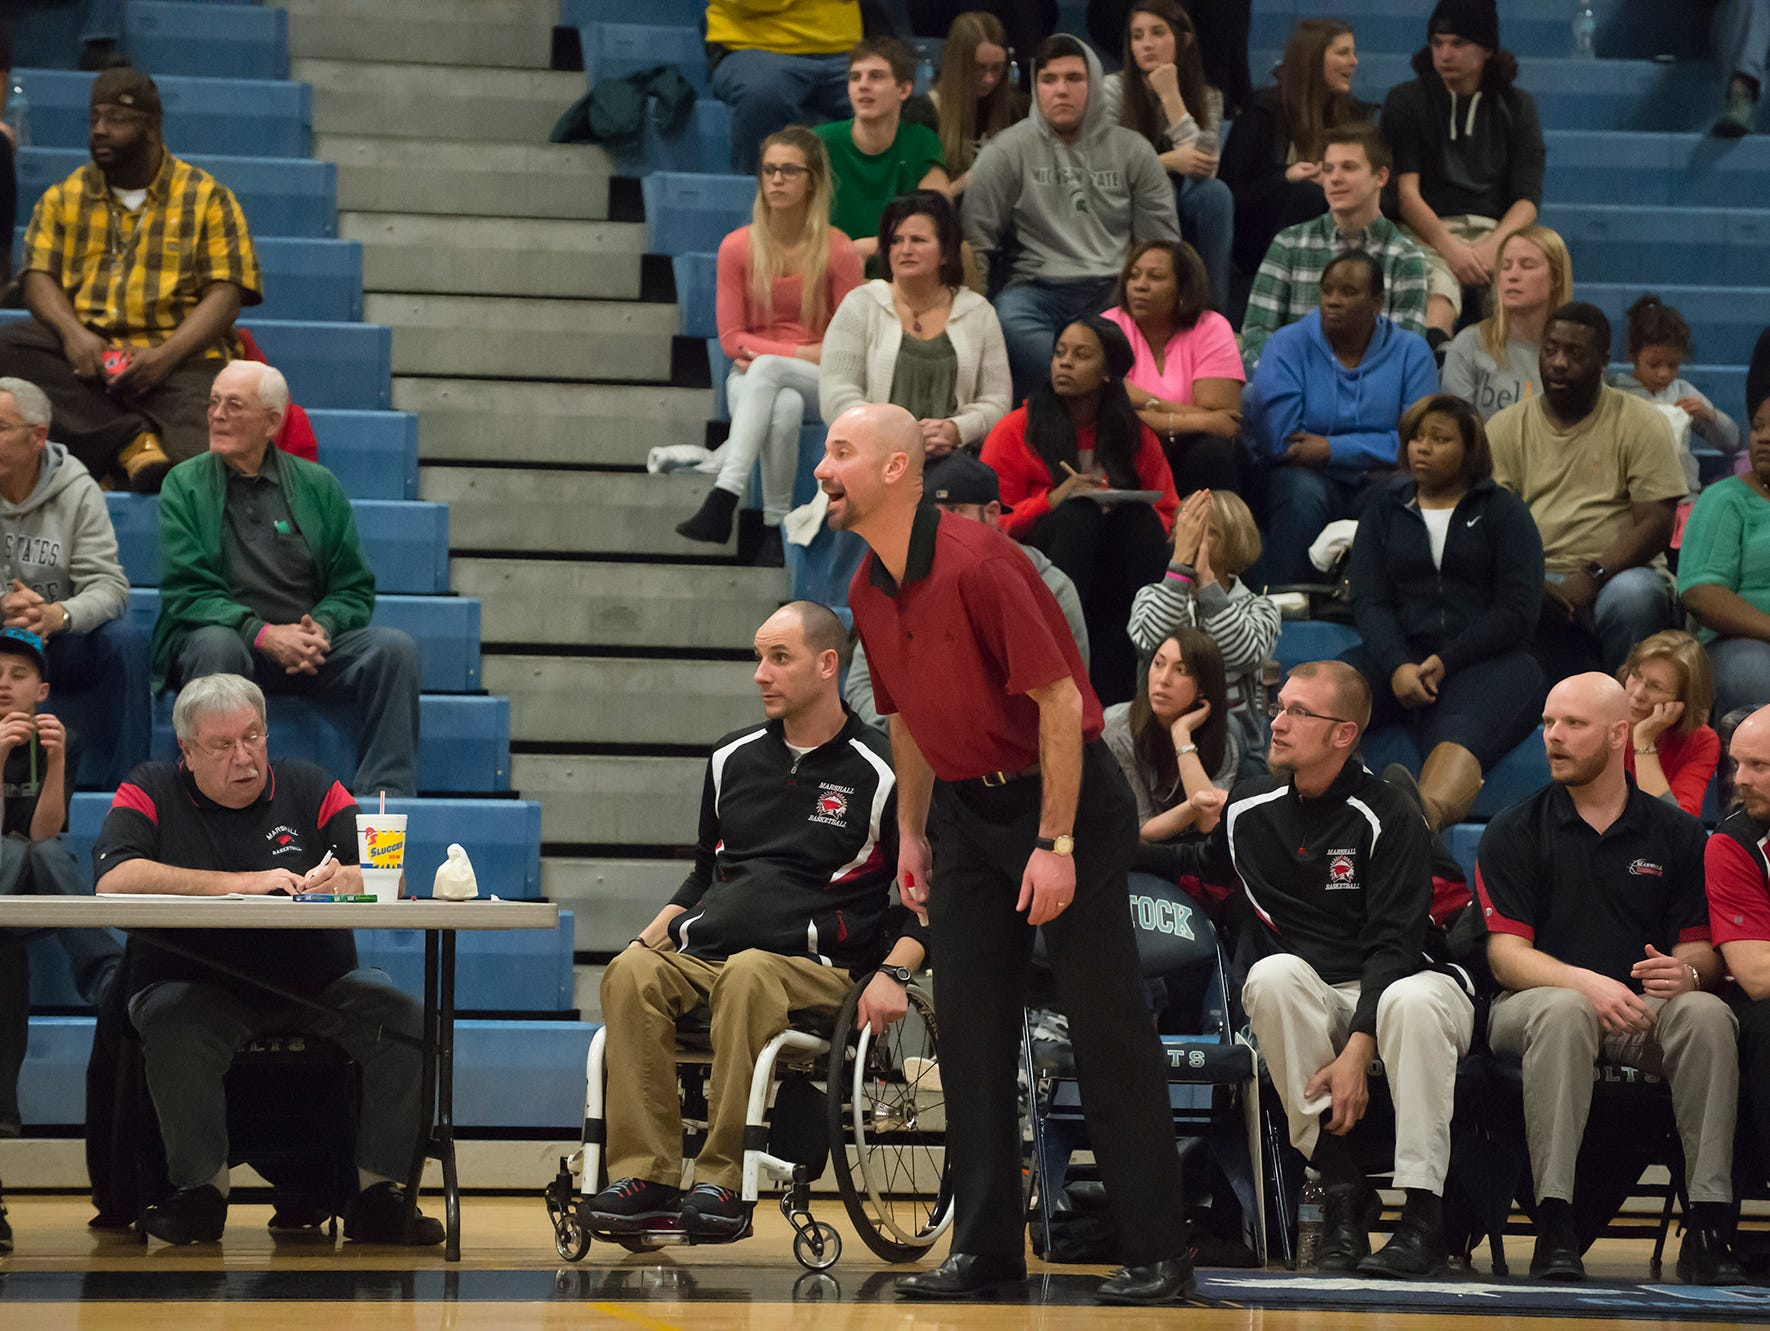 Marshall's coach Nicholas Dent reacts during Monday's district game.